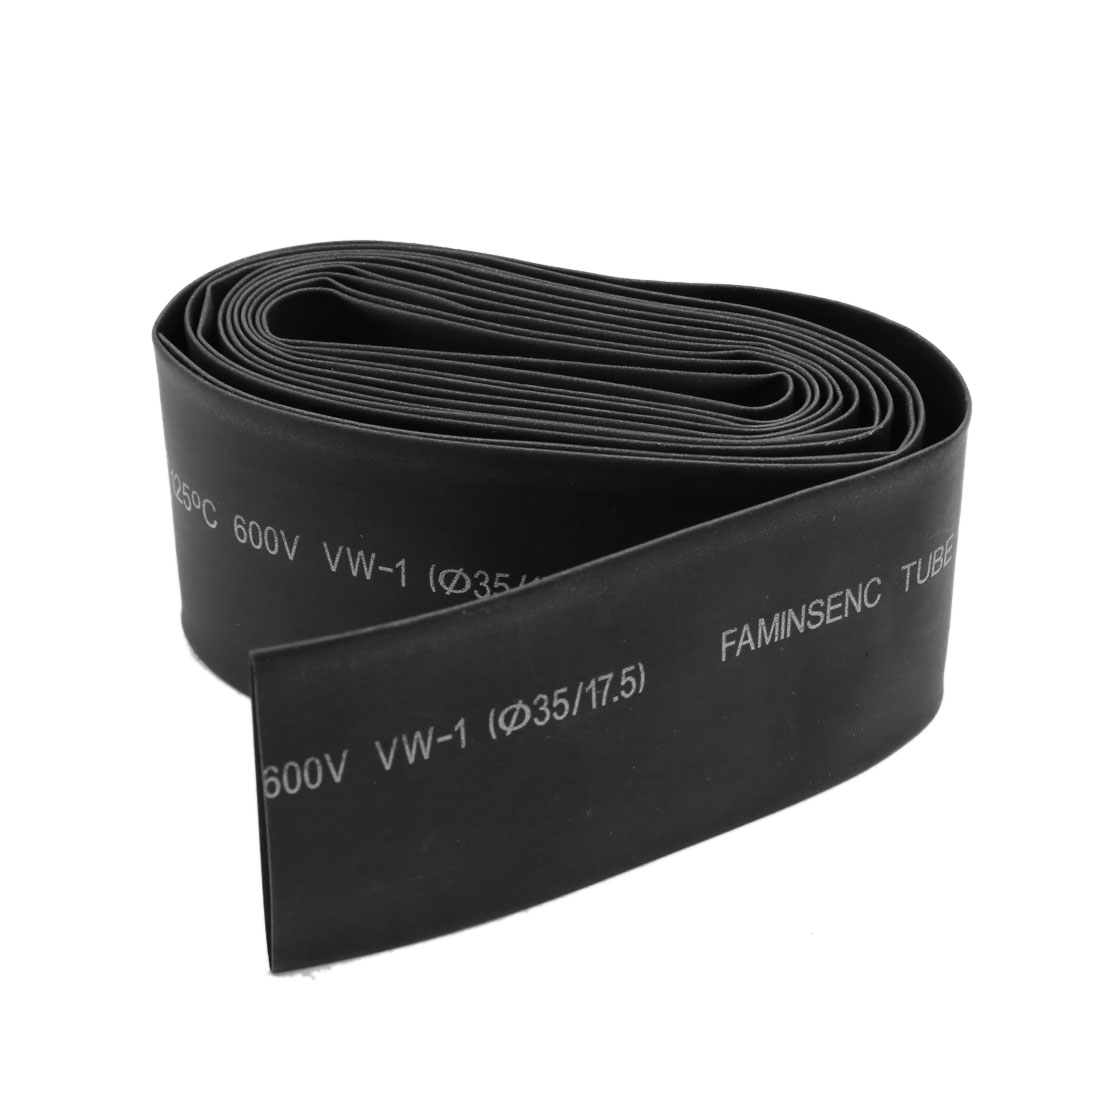 2.6M 125 Degree 35mm Dia Polyolefin Insulation Heat Shrinkable Tubing Tube Wrap Black